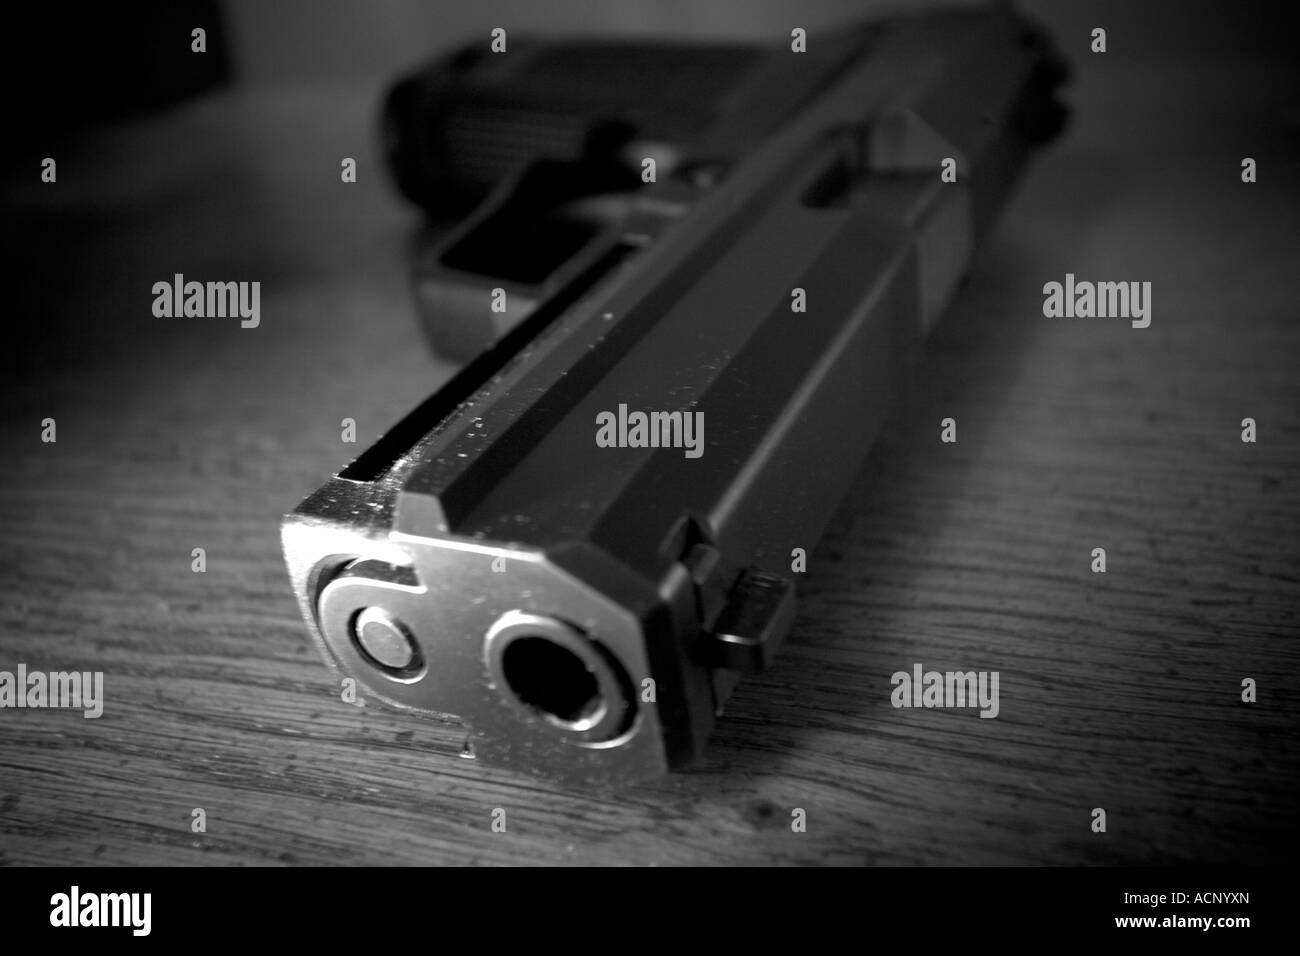 Unsecured 9mm. - Stock Image